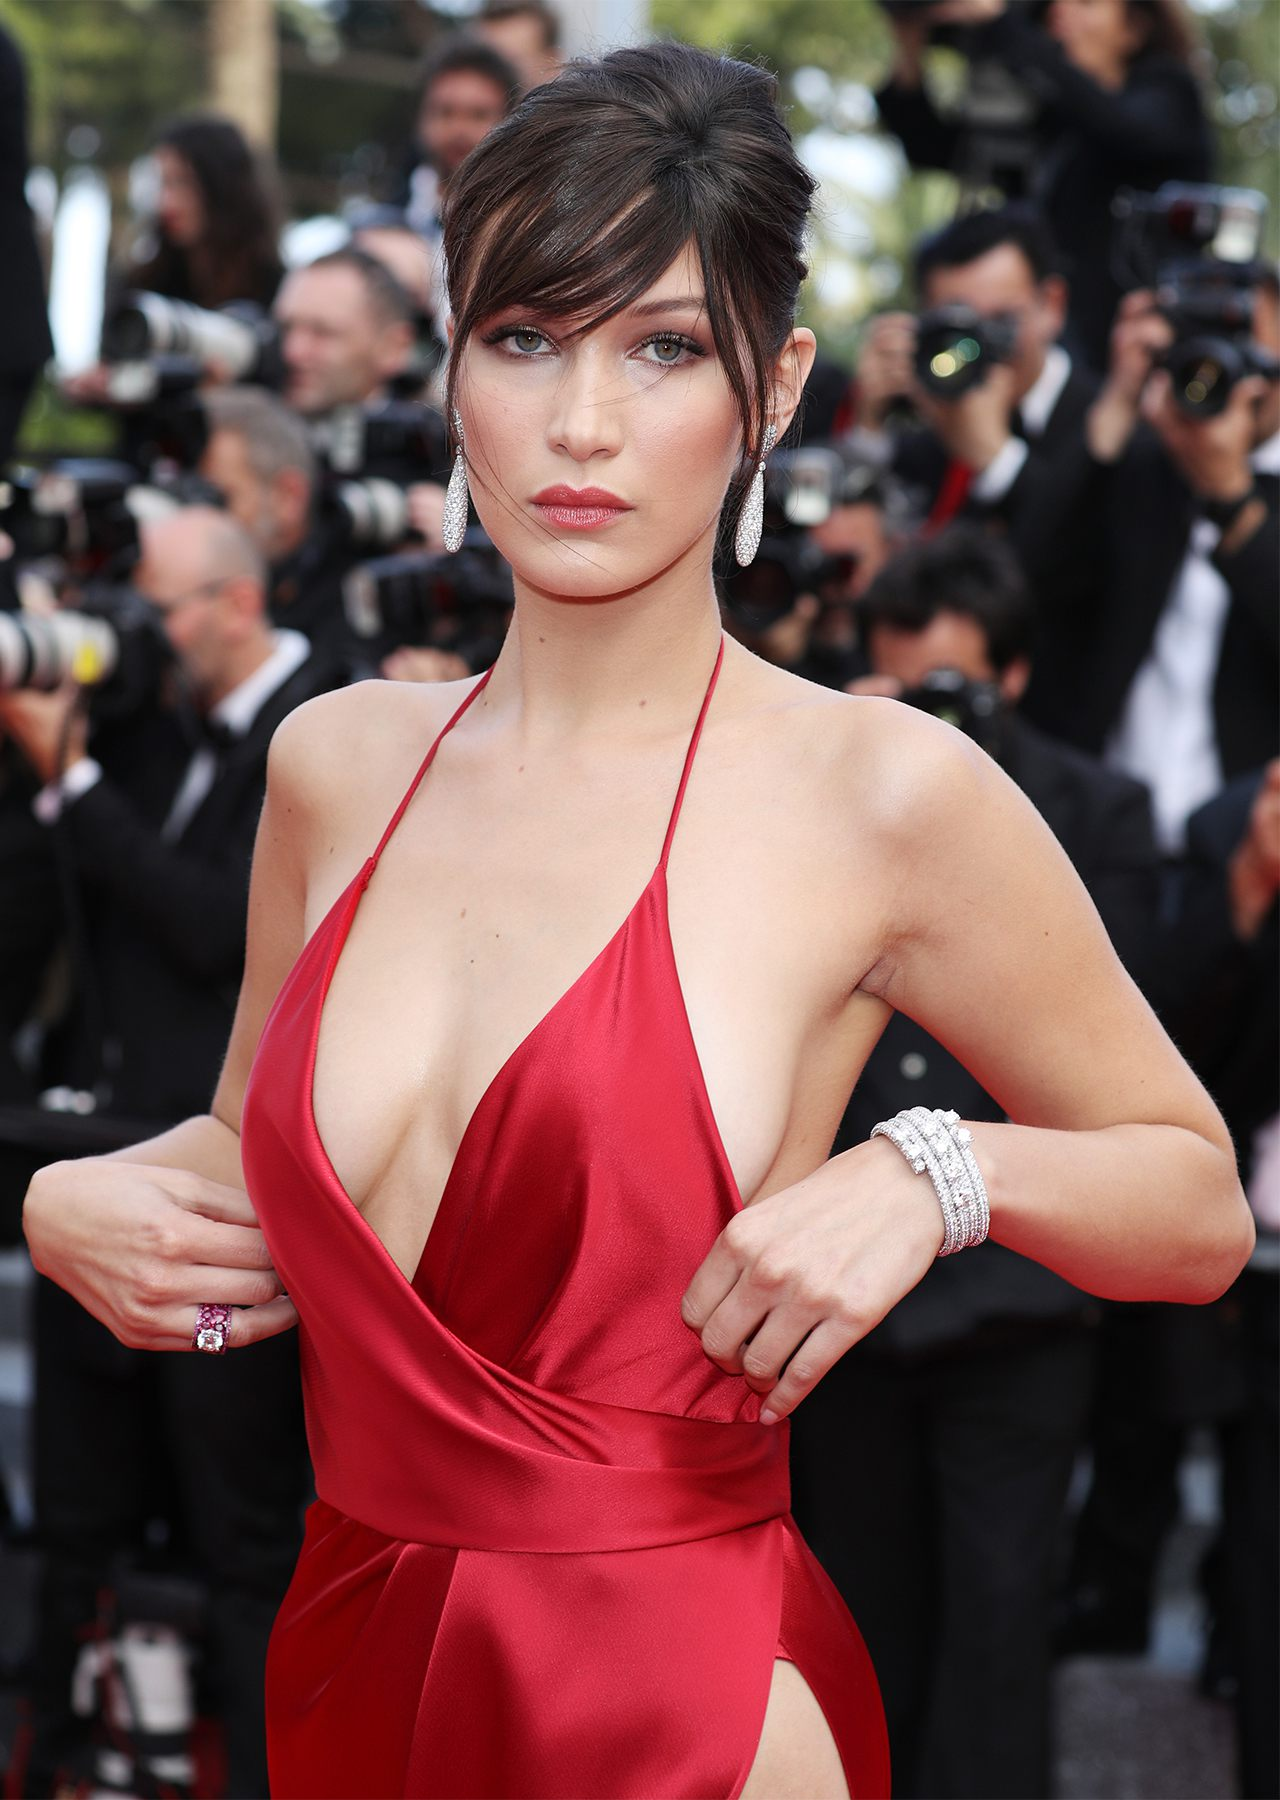 1280_bella_hadid_unknown_girl_premiere_cannes_full_3